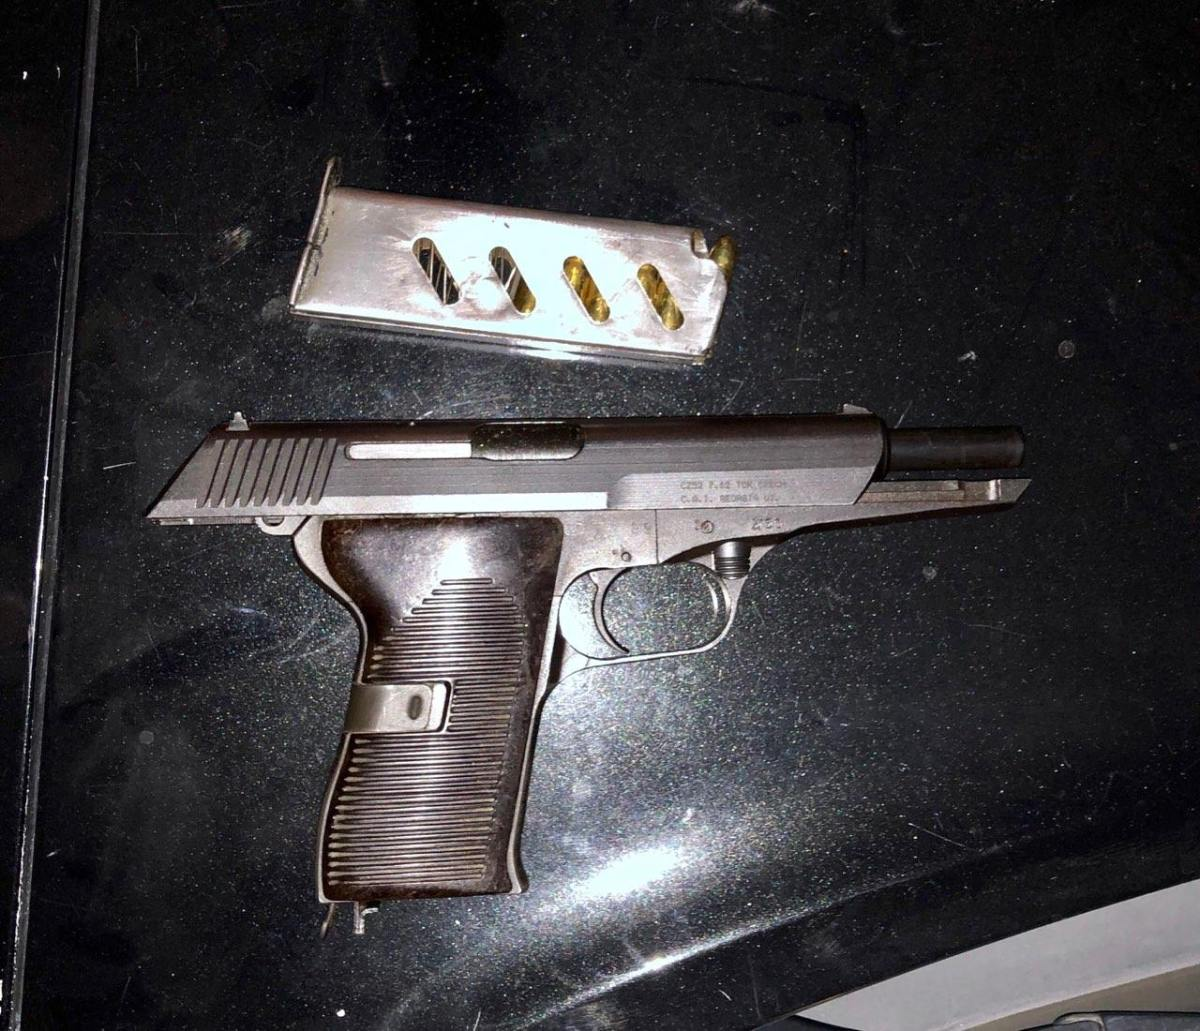 GANG MEMBER ARRESTED WITH A LOADED FIREARM HIDDEN IN HIS WAISTBAND